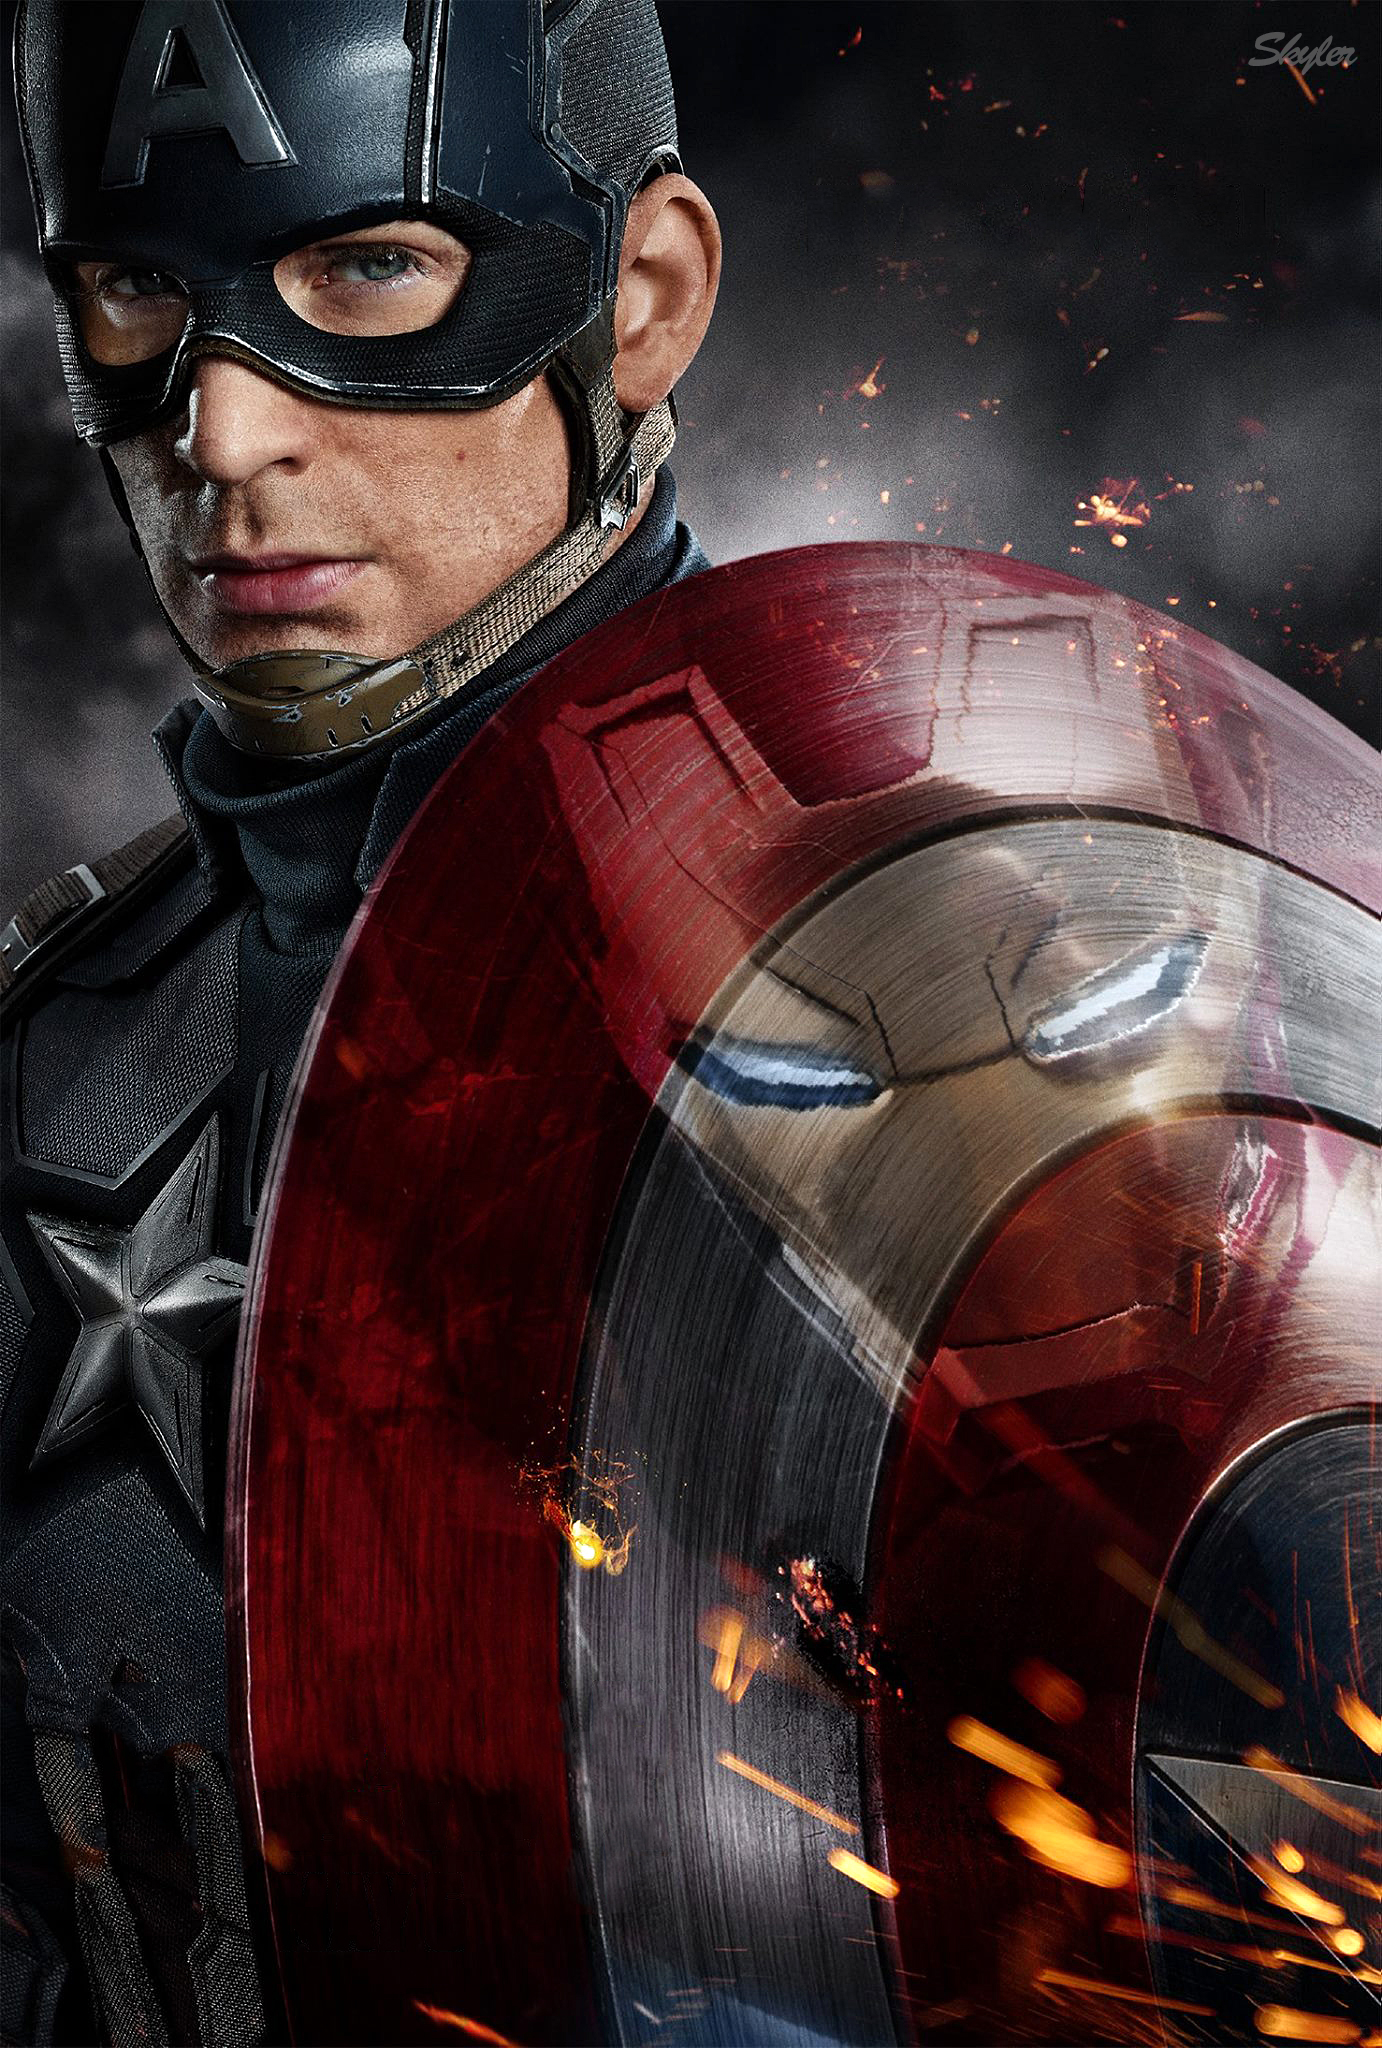 Most Inspiring Wallpaper High Resolution Captain America - 151127093004305909  Collection_889089.jpg